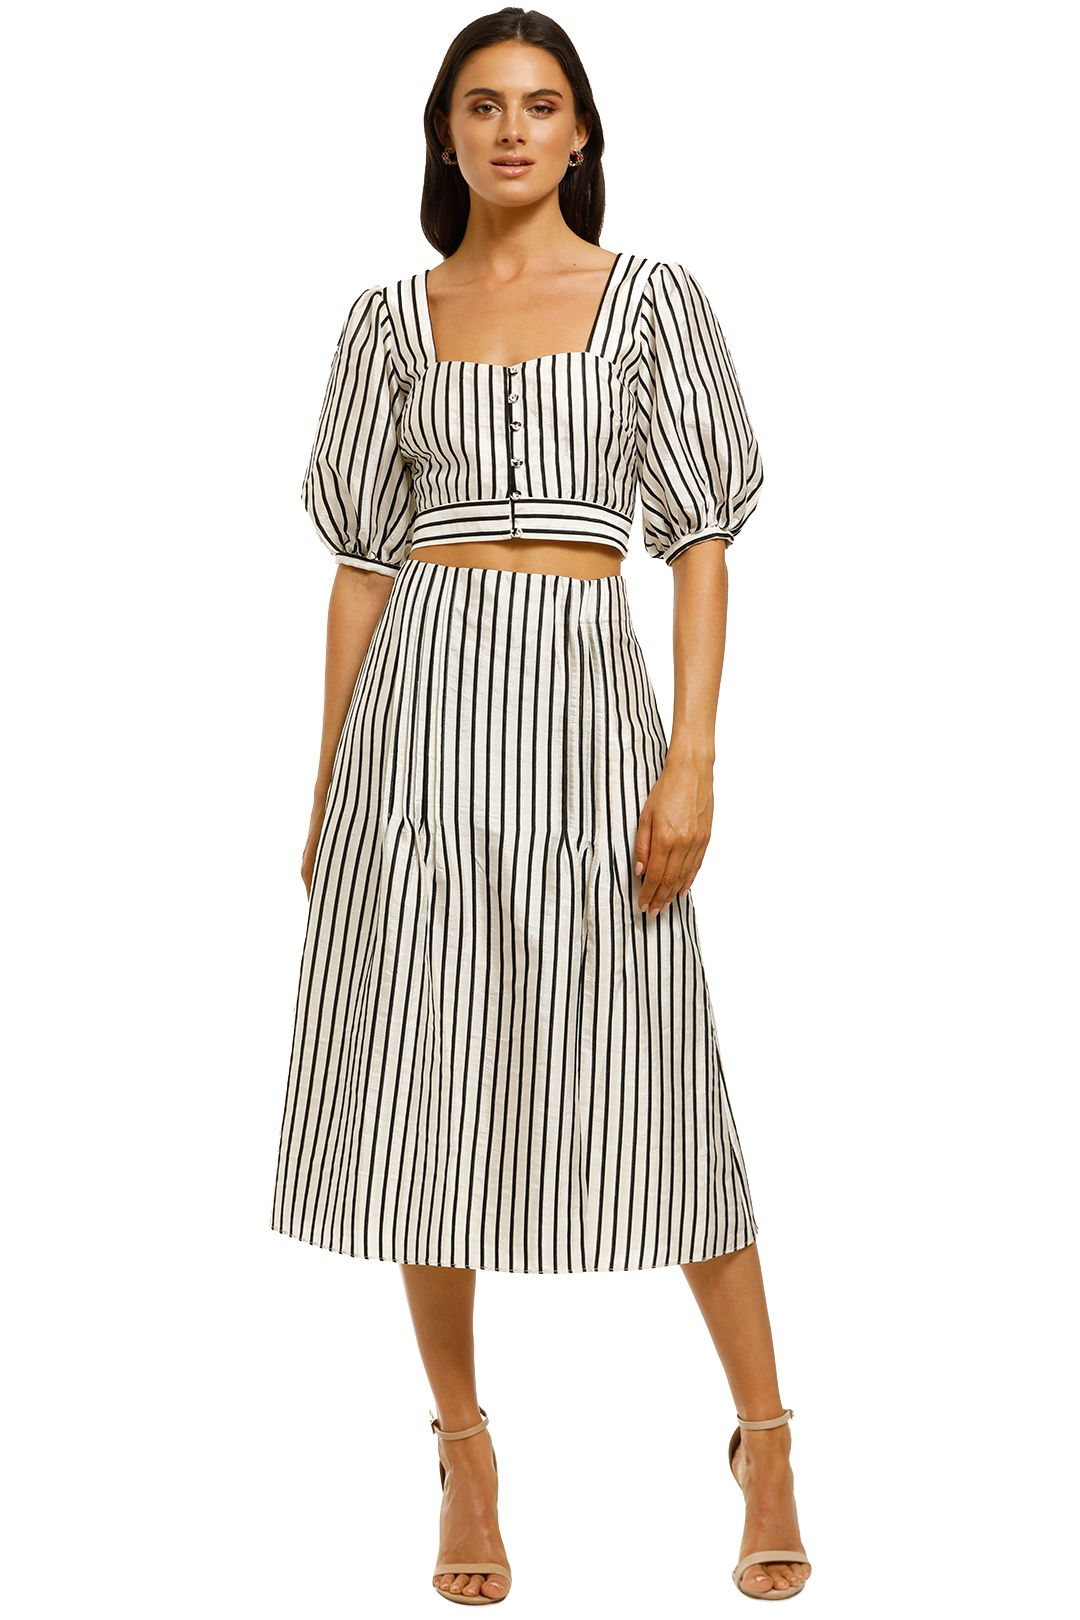 Talulah-Wild-Honey-Top-and-Skirt-Set-Ecru-and-Black-Stripe-Front